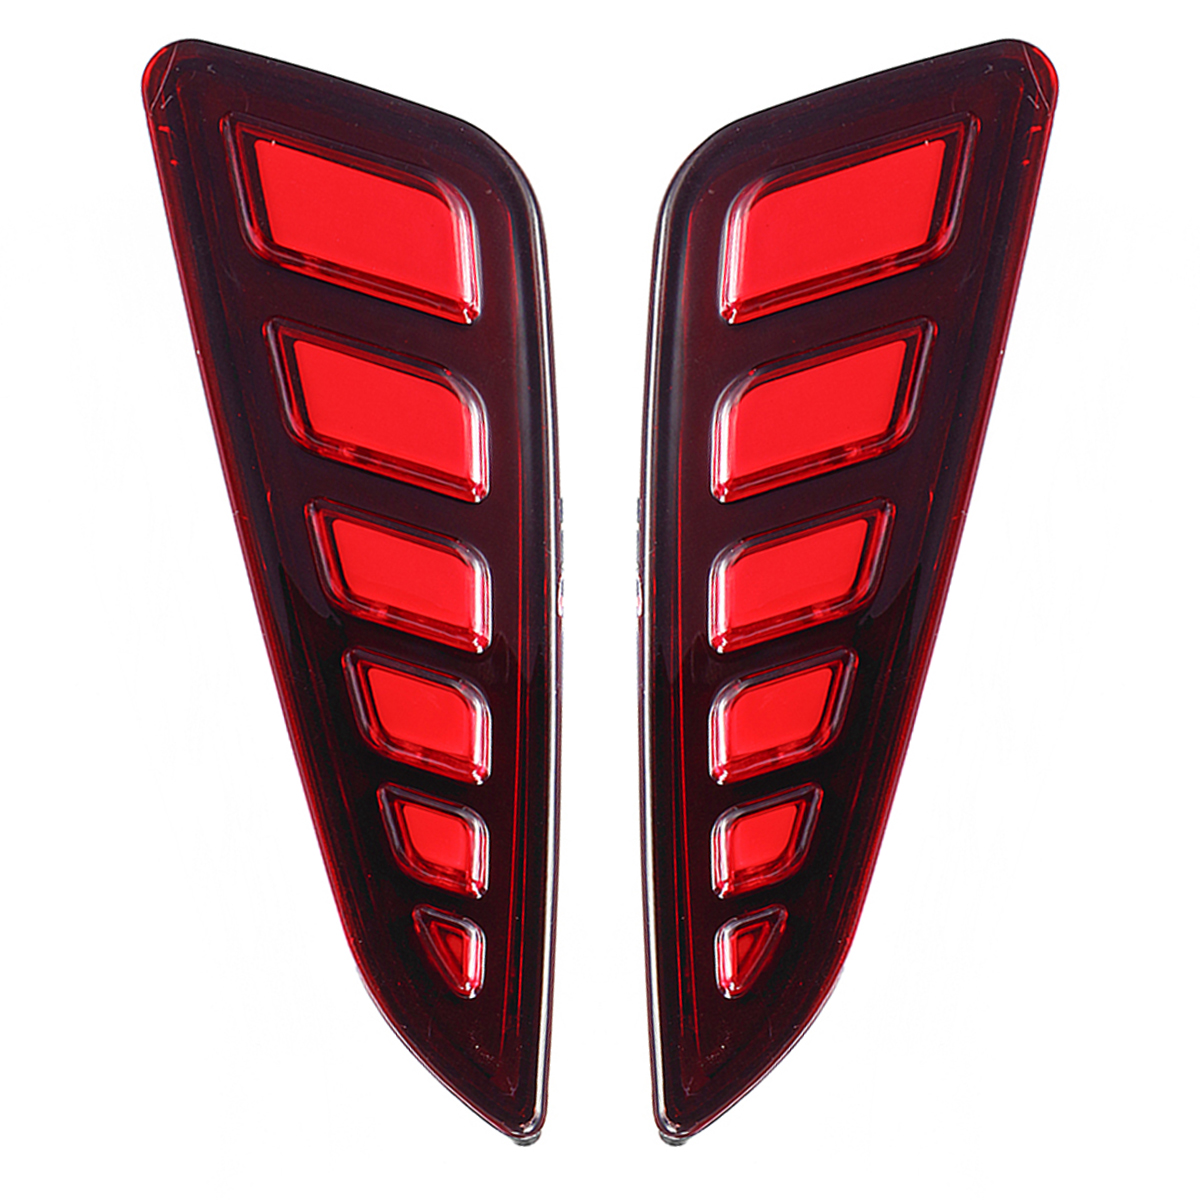 Pair LED Rear Bumper Reflector Driving Brake Lights Daytime Running Lamps for Toyota C-HR 2016-2018